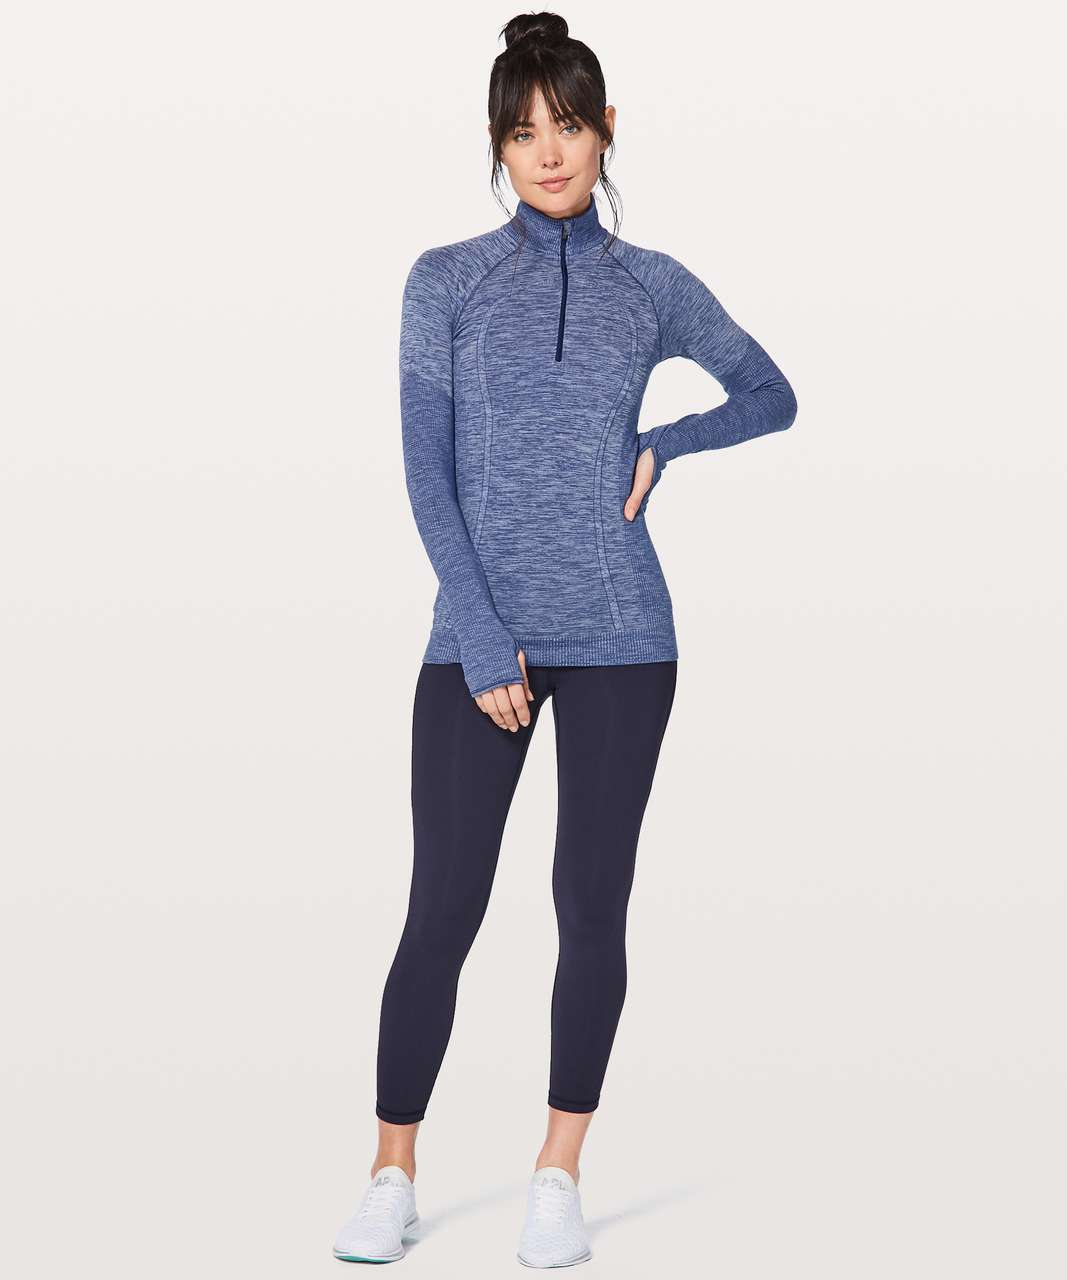 Lululemon Swiftly Wool 1/2 Zip - Hero Blue / White